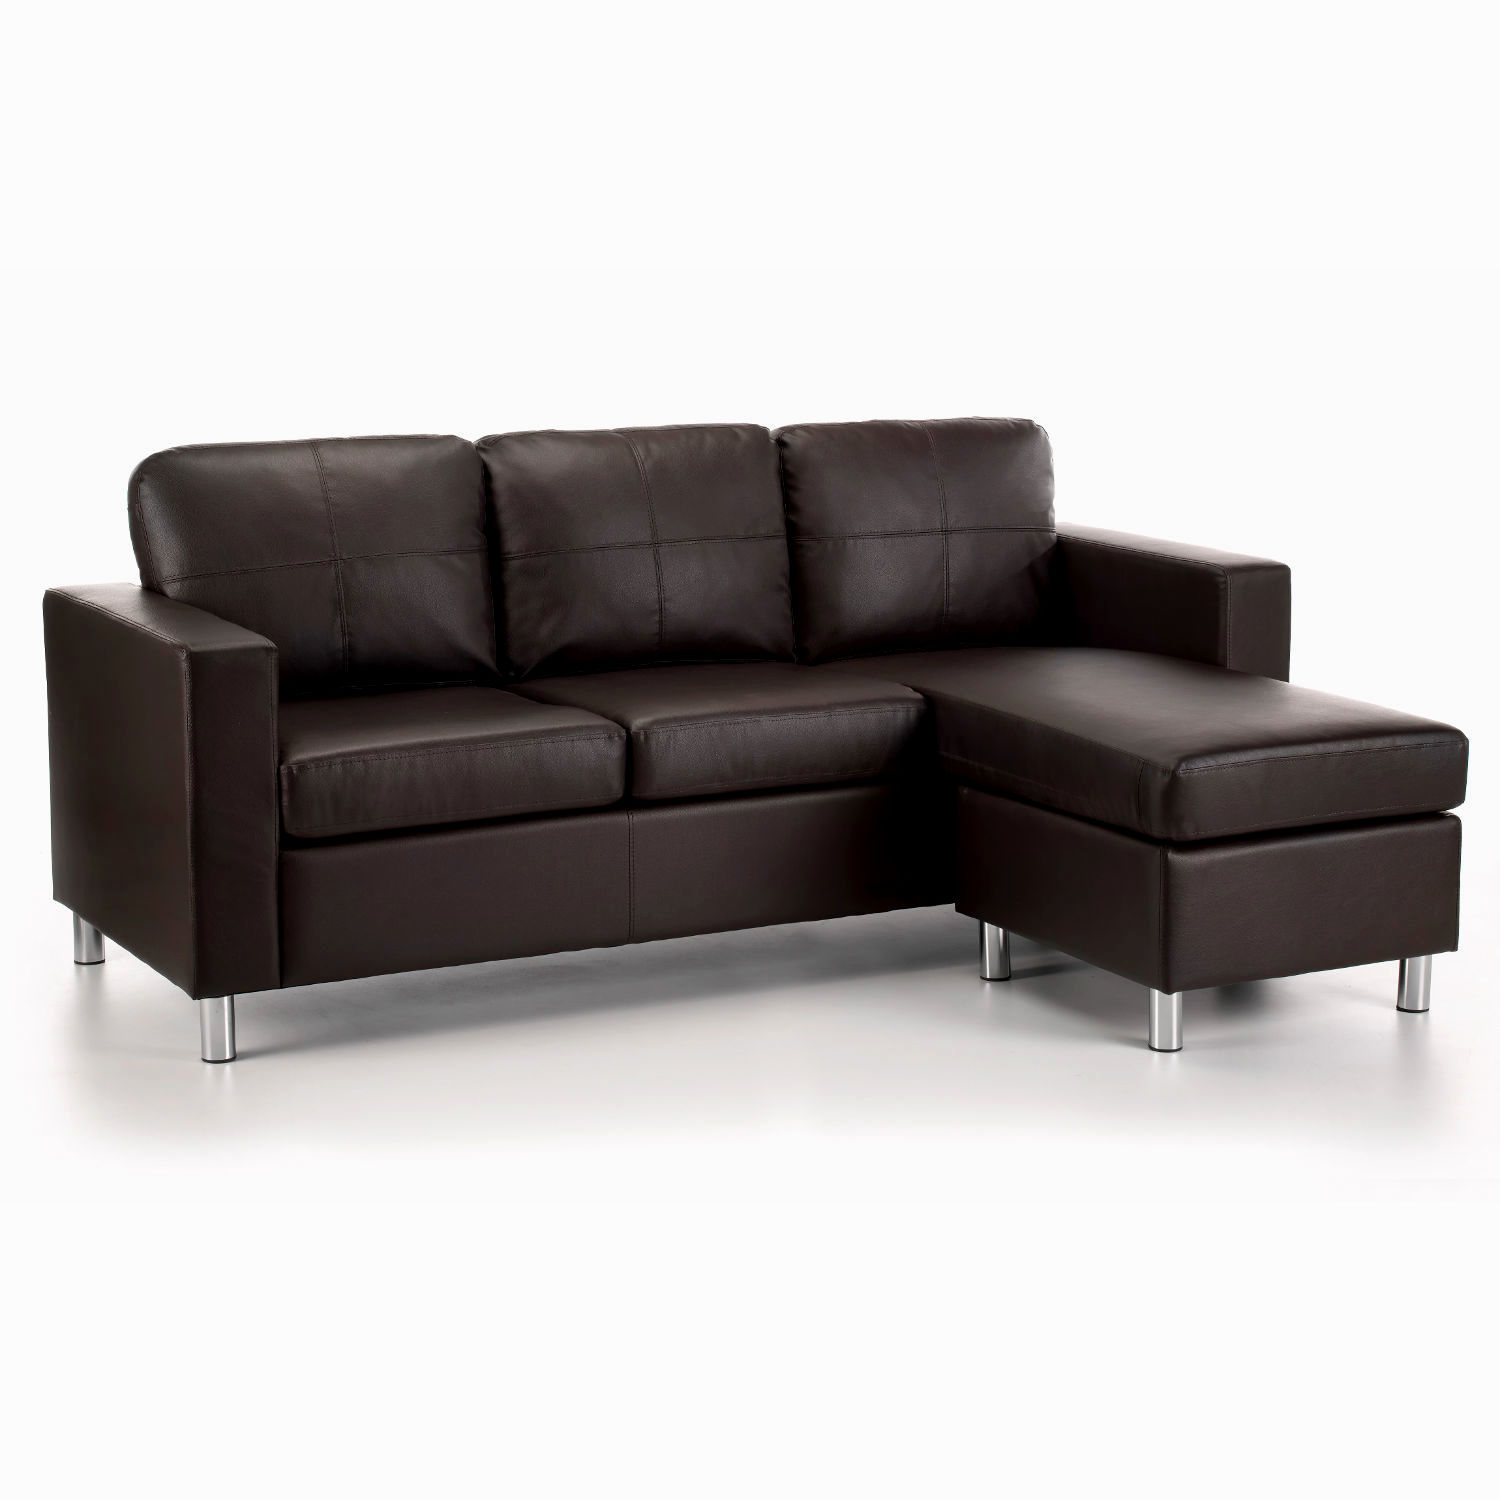 fascinating buchannan faux leather sofa pattern-Cool Buchannan Faux Leather sofa Décor